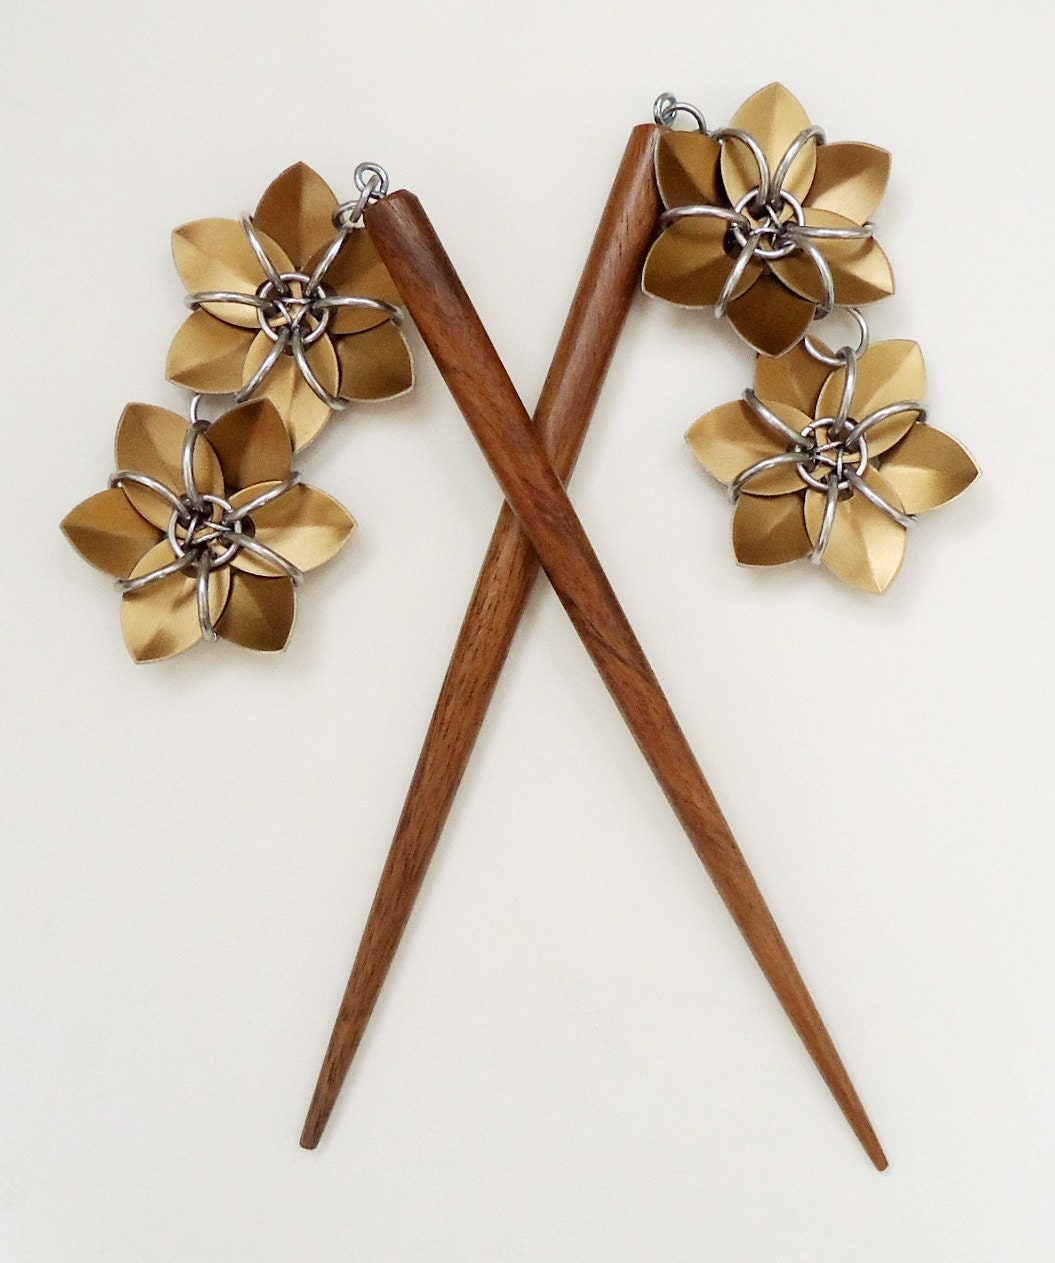 Pair Of Six Inch Wooden Hair Sticks With By Lanzacreations